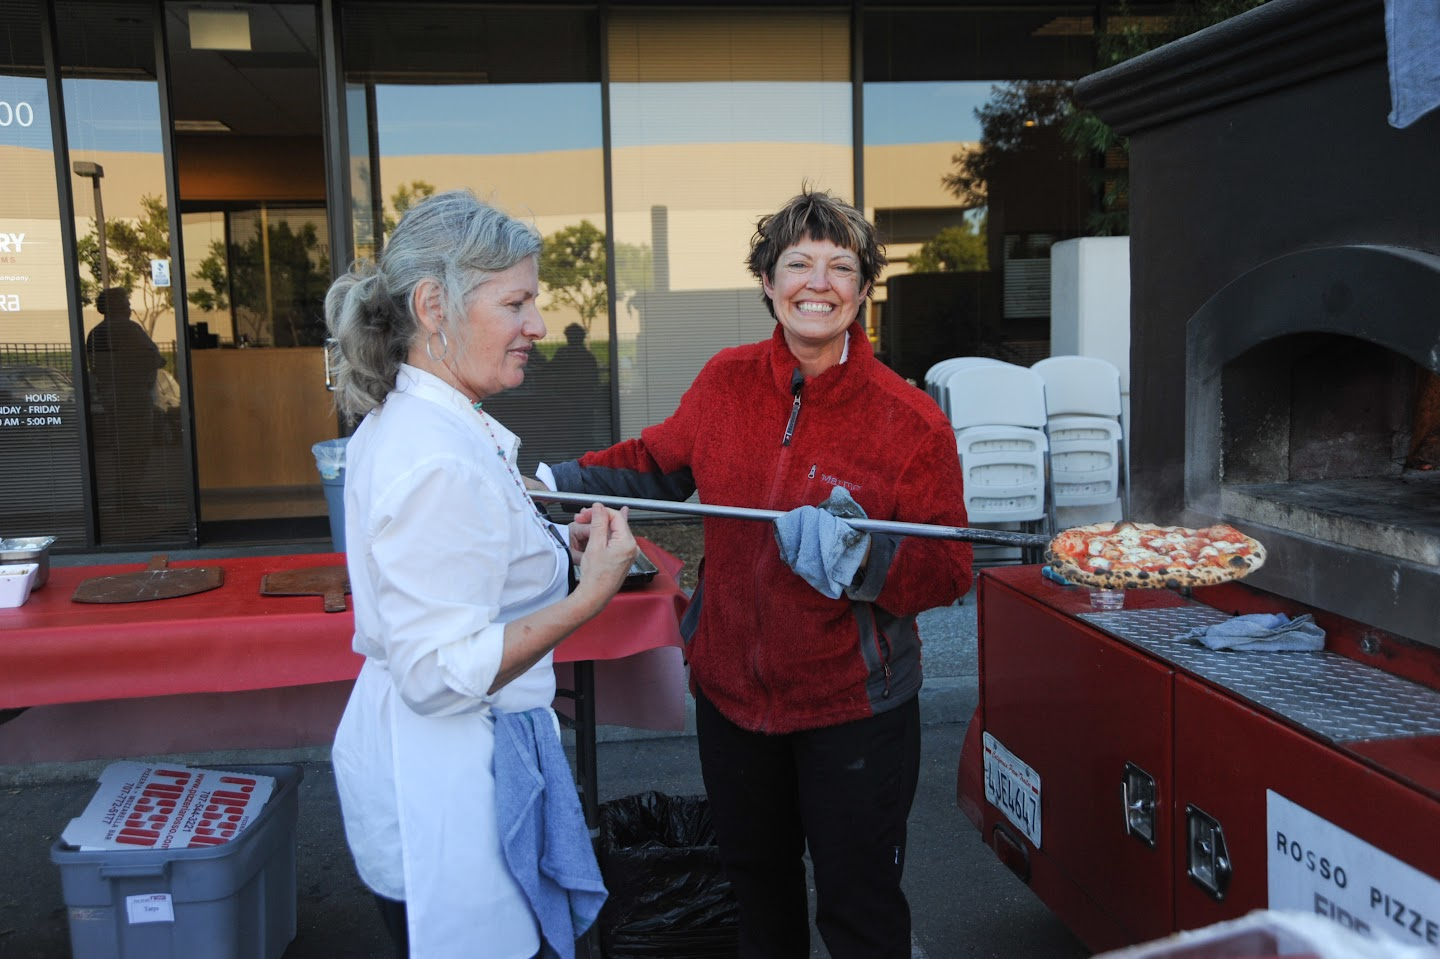 Rotary Means Business at Discovery Office with Rosso Pizzeria - DSC_6842.jpg